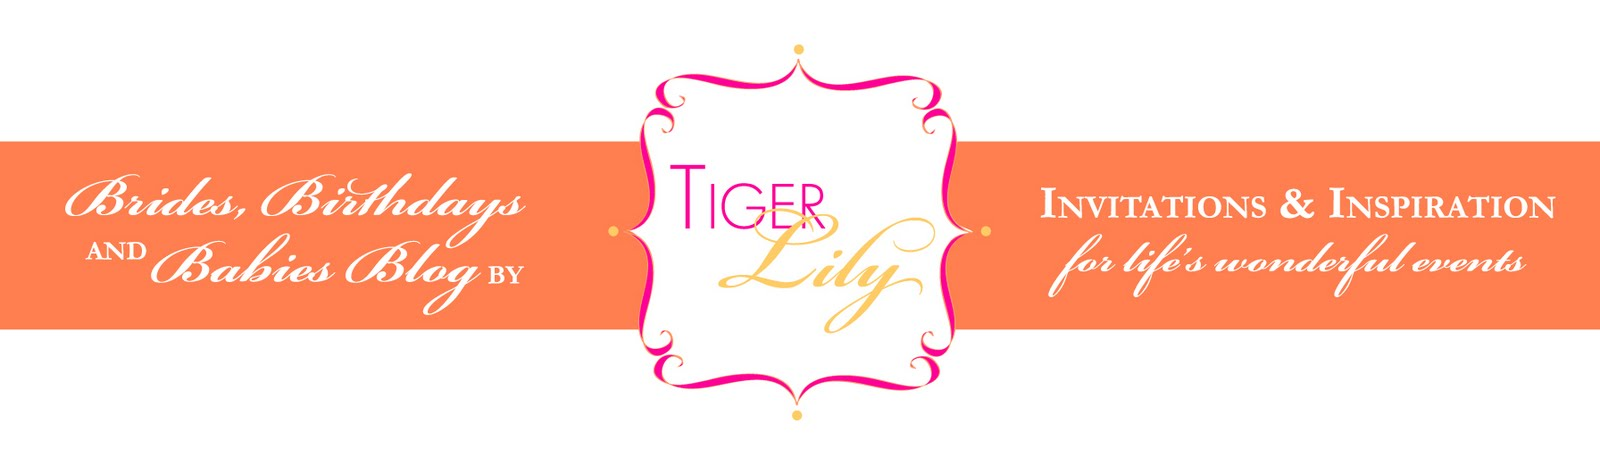 Brides, Birthdays, and Babies Blog <br> by Tiger Lily Invitations